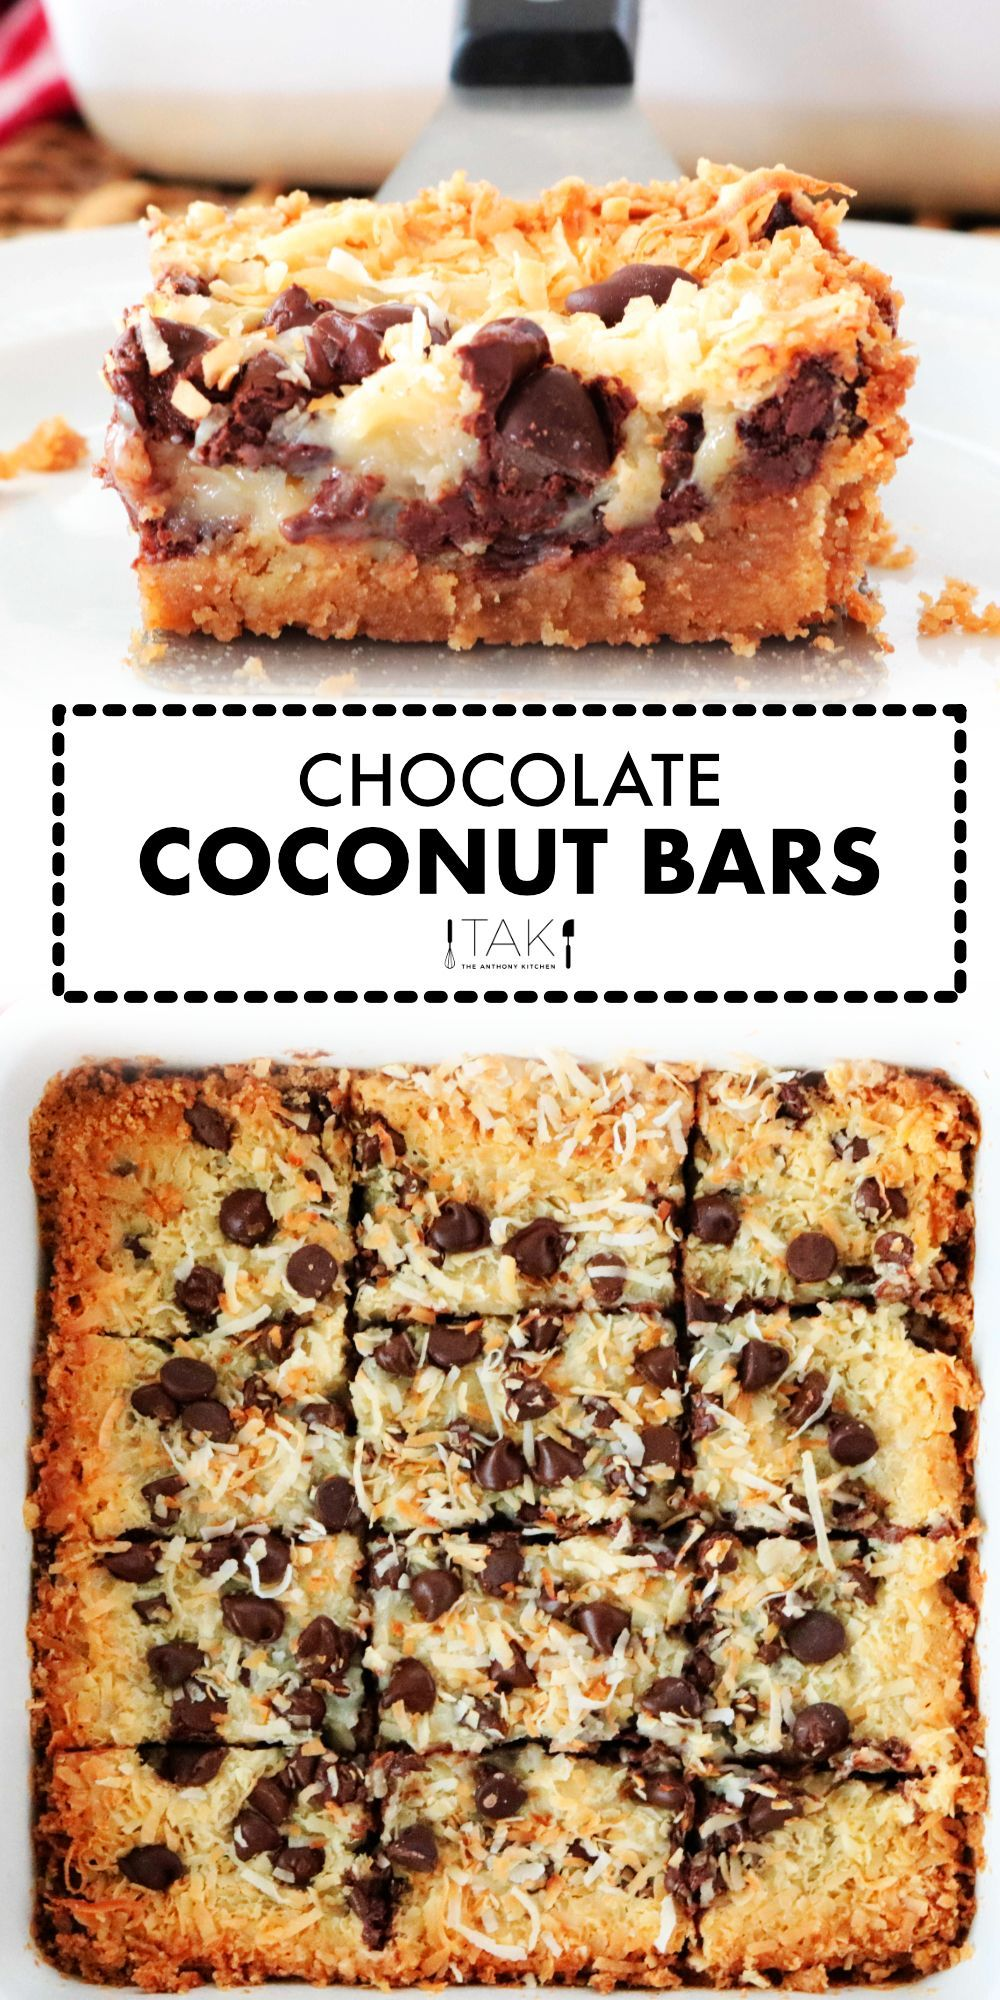 Chocolate Coconut Bars Recipe The Anthony Kitchen Recipe In 2020 Coconut Chocolate Bars Savory Dessert Coconut Desserts